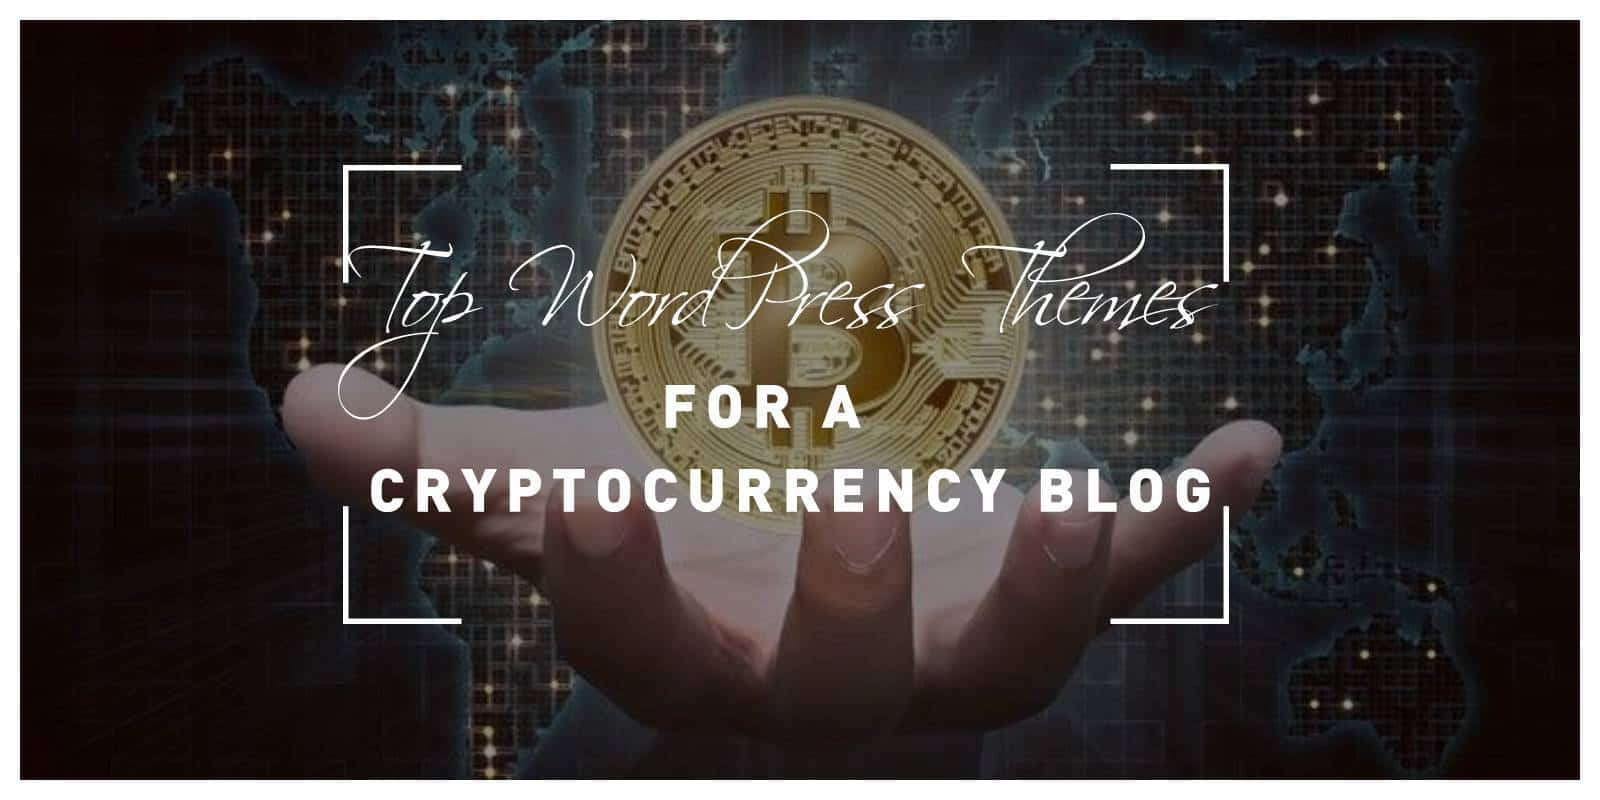 Top 15 WordPress Themes for a Cryptocurrency Blog With Modern Styles and Advanced Features